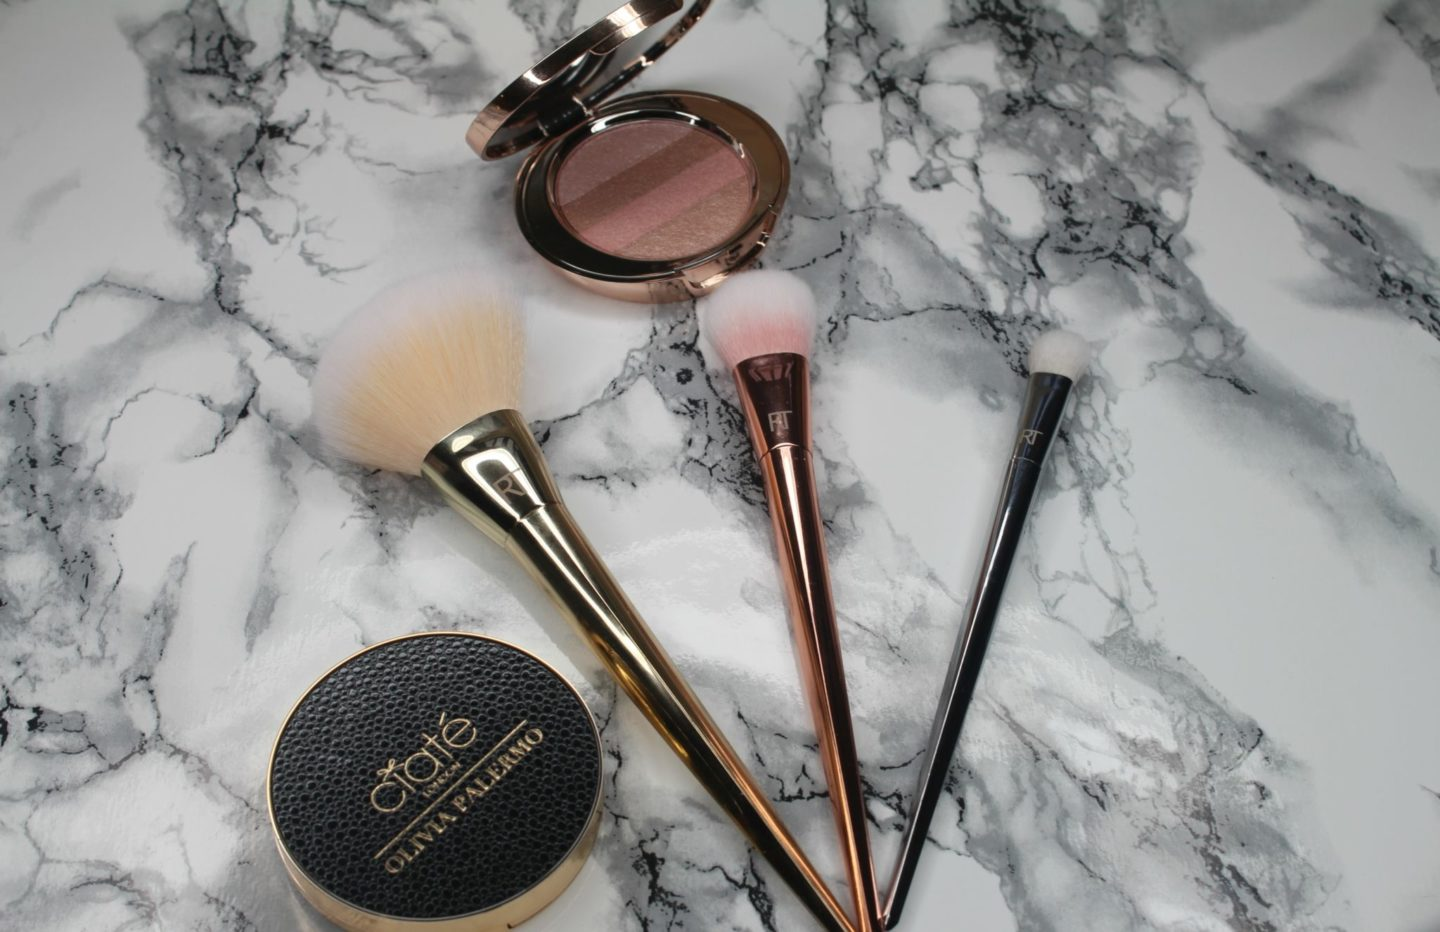 THE BEST CRUELTY-FREE AND VEGAN MAKEUP BRUSHES